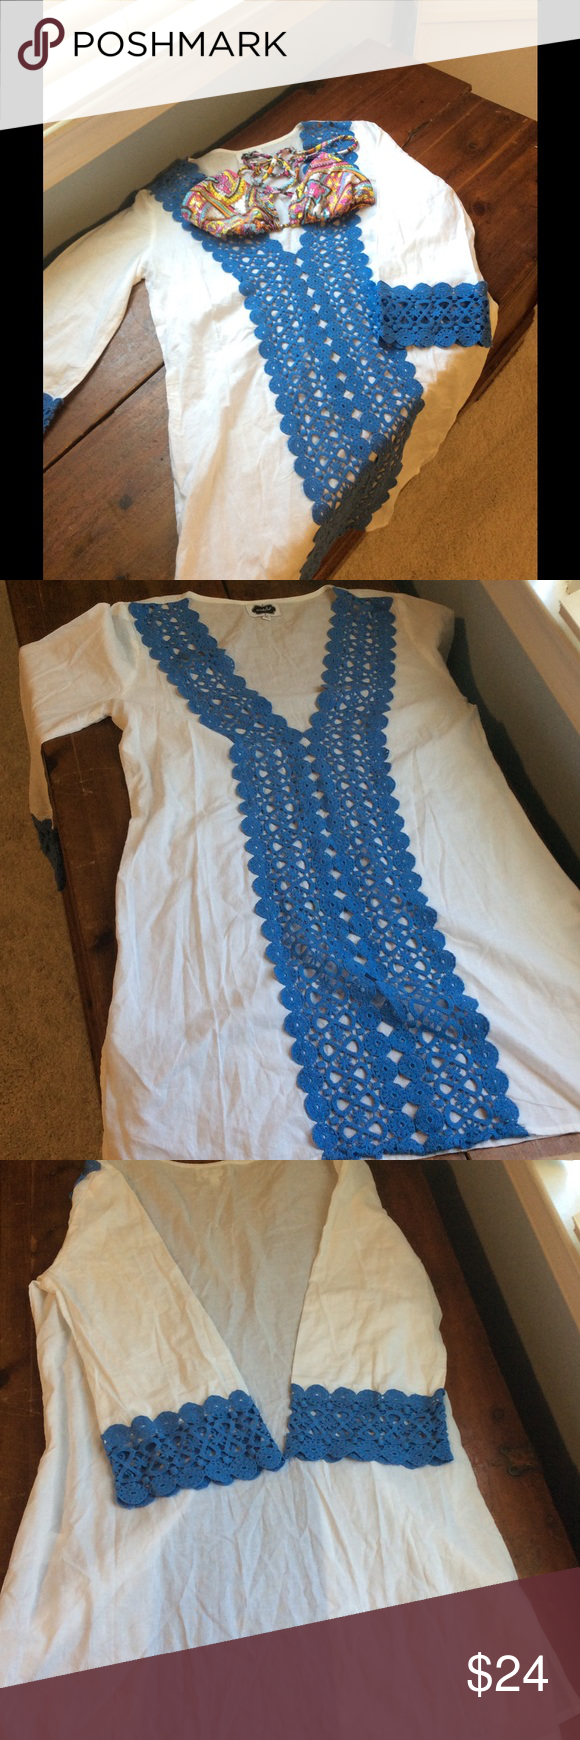 HP 9/21Swimsuit cover-upNWT HP 8/28 Beautiful must have blue and white swimsuit cover-up never worn Swim Coverups